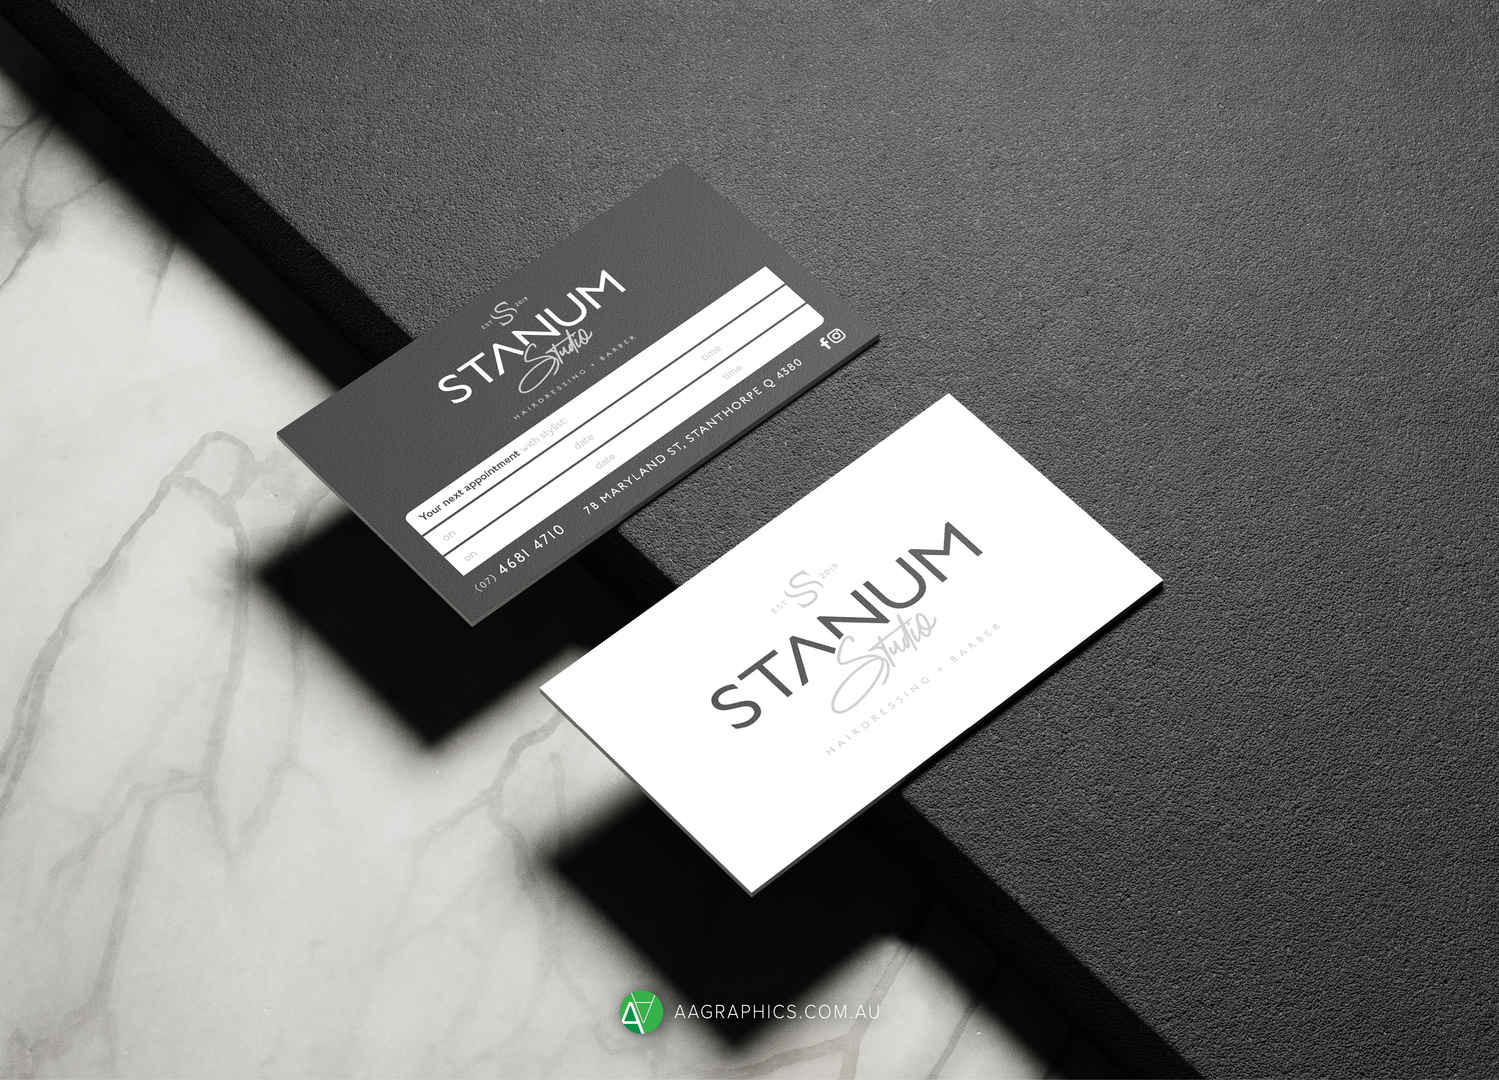 Stanum Studio_Business Card.jpg